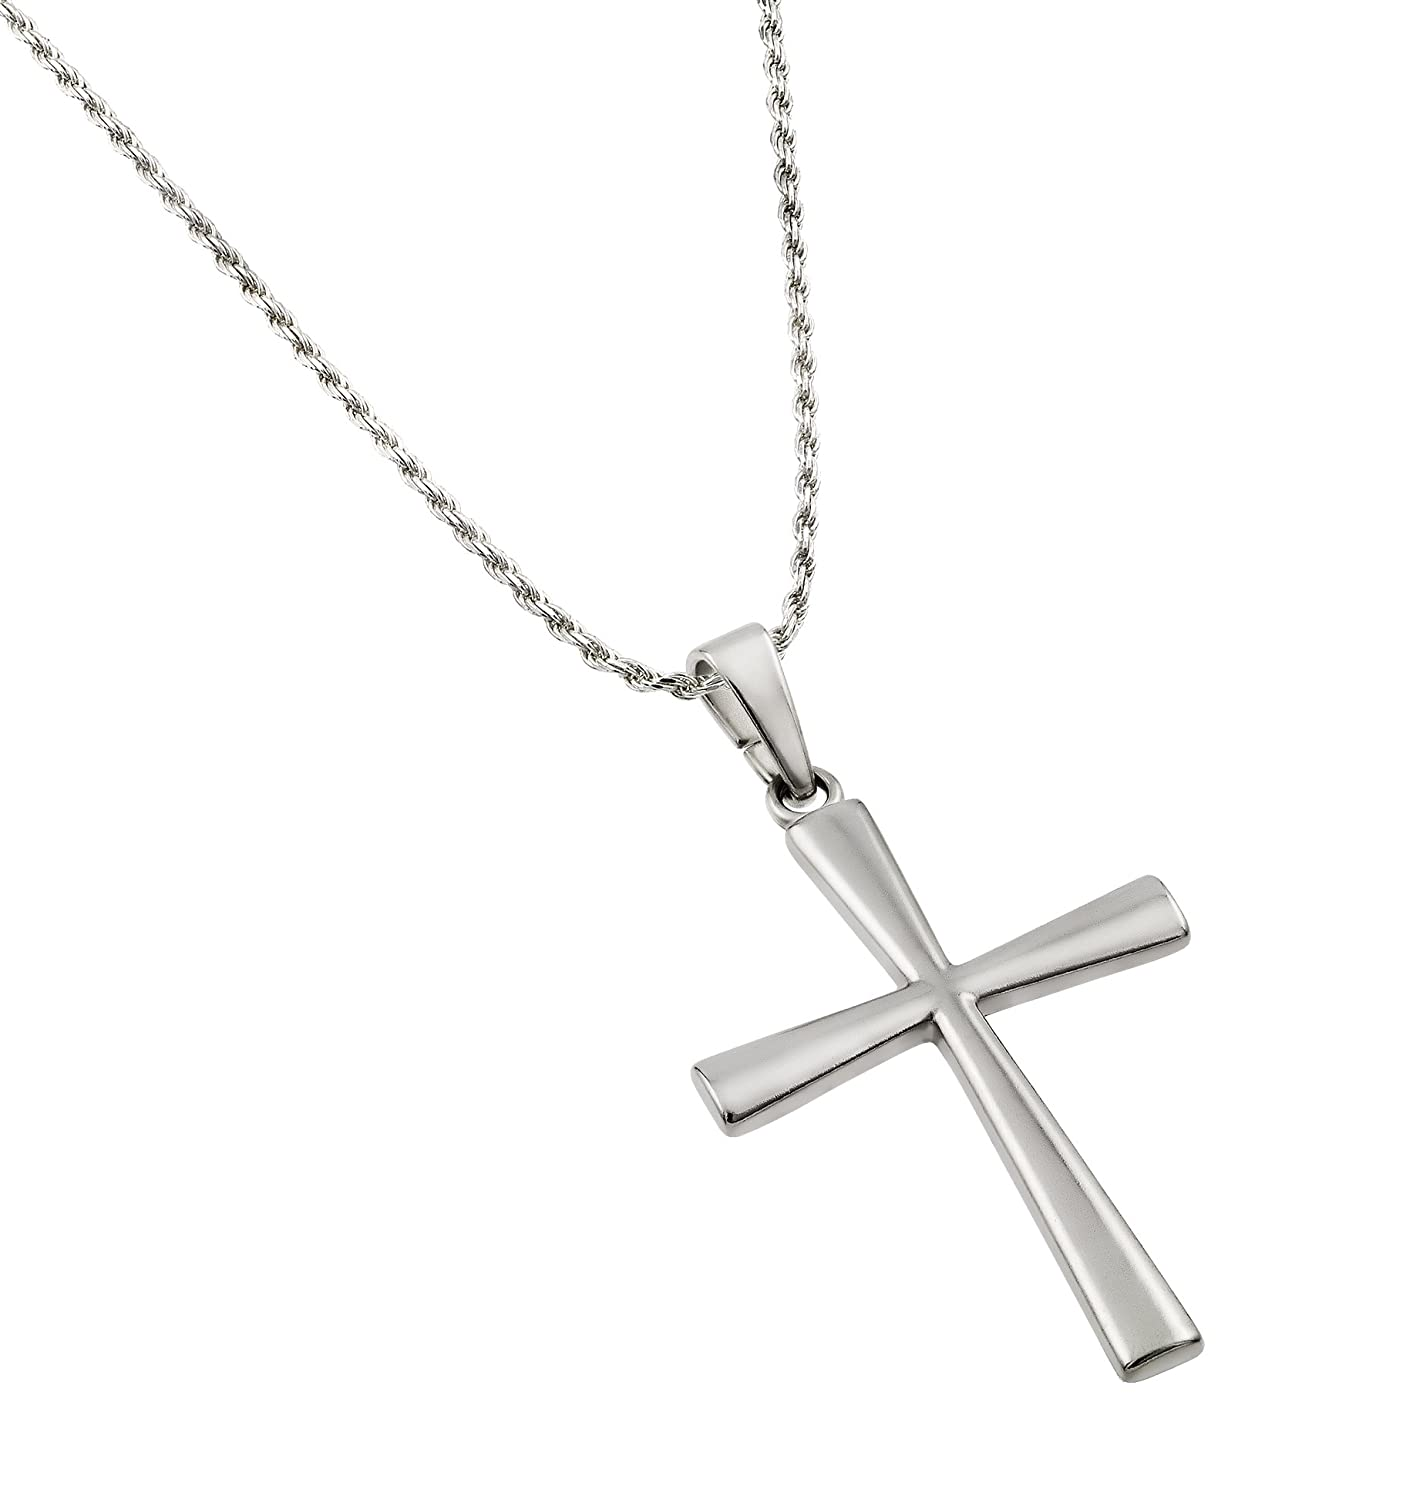 Amazon 2 inches large plain sterling silver cross pendant amazon 2 inches large plain sterling silver cross pendant with 24 inch sterling silver 15mm rope chain womens necklaces jewelry aloadofball Images